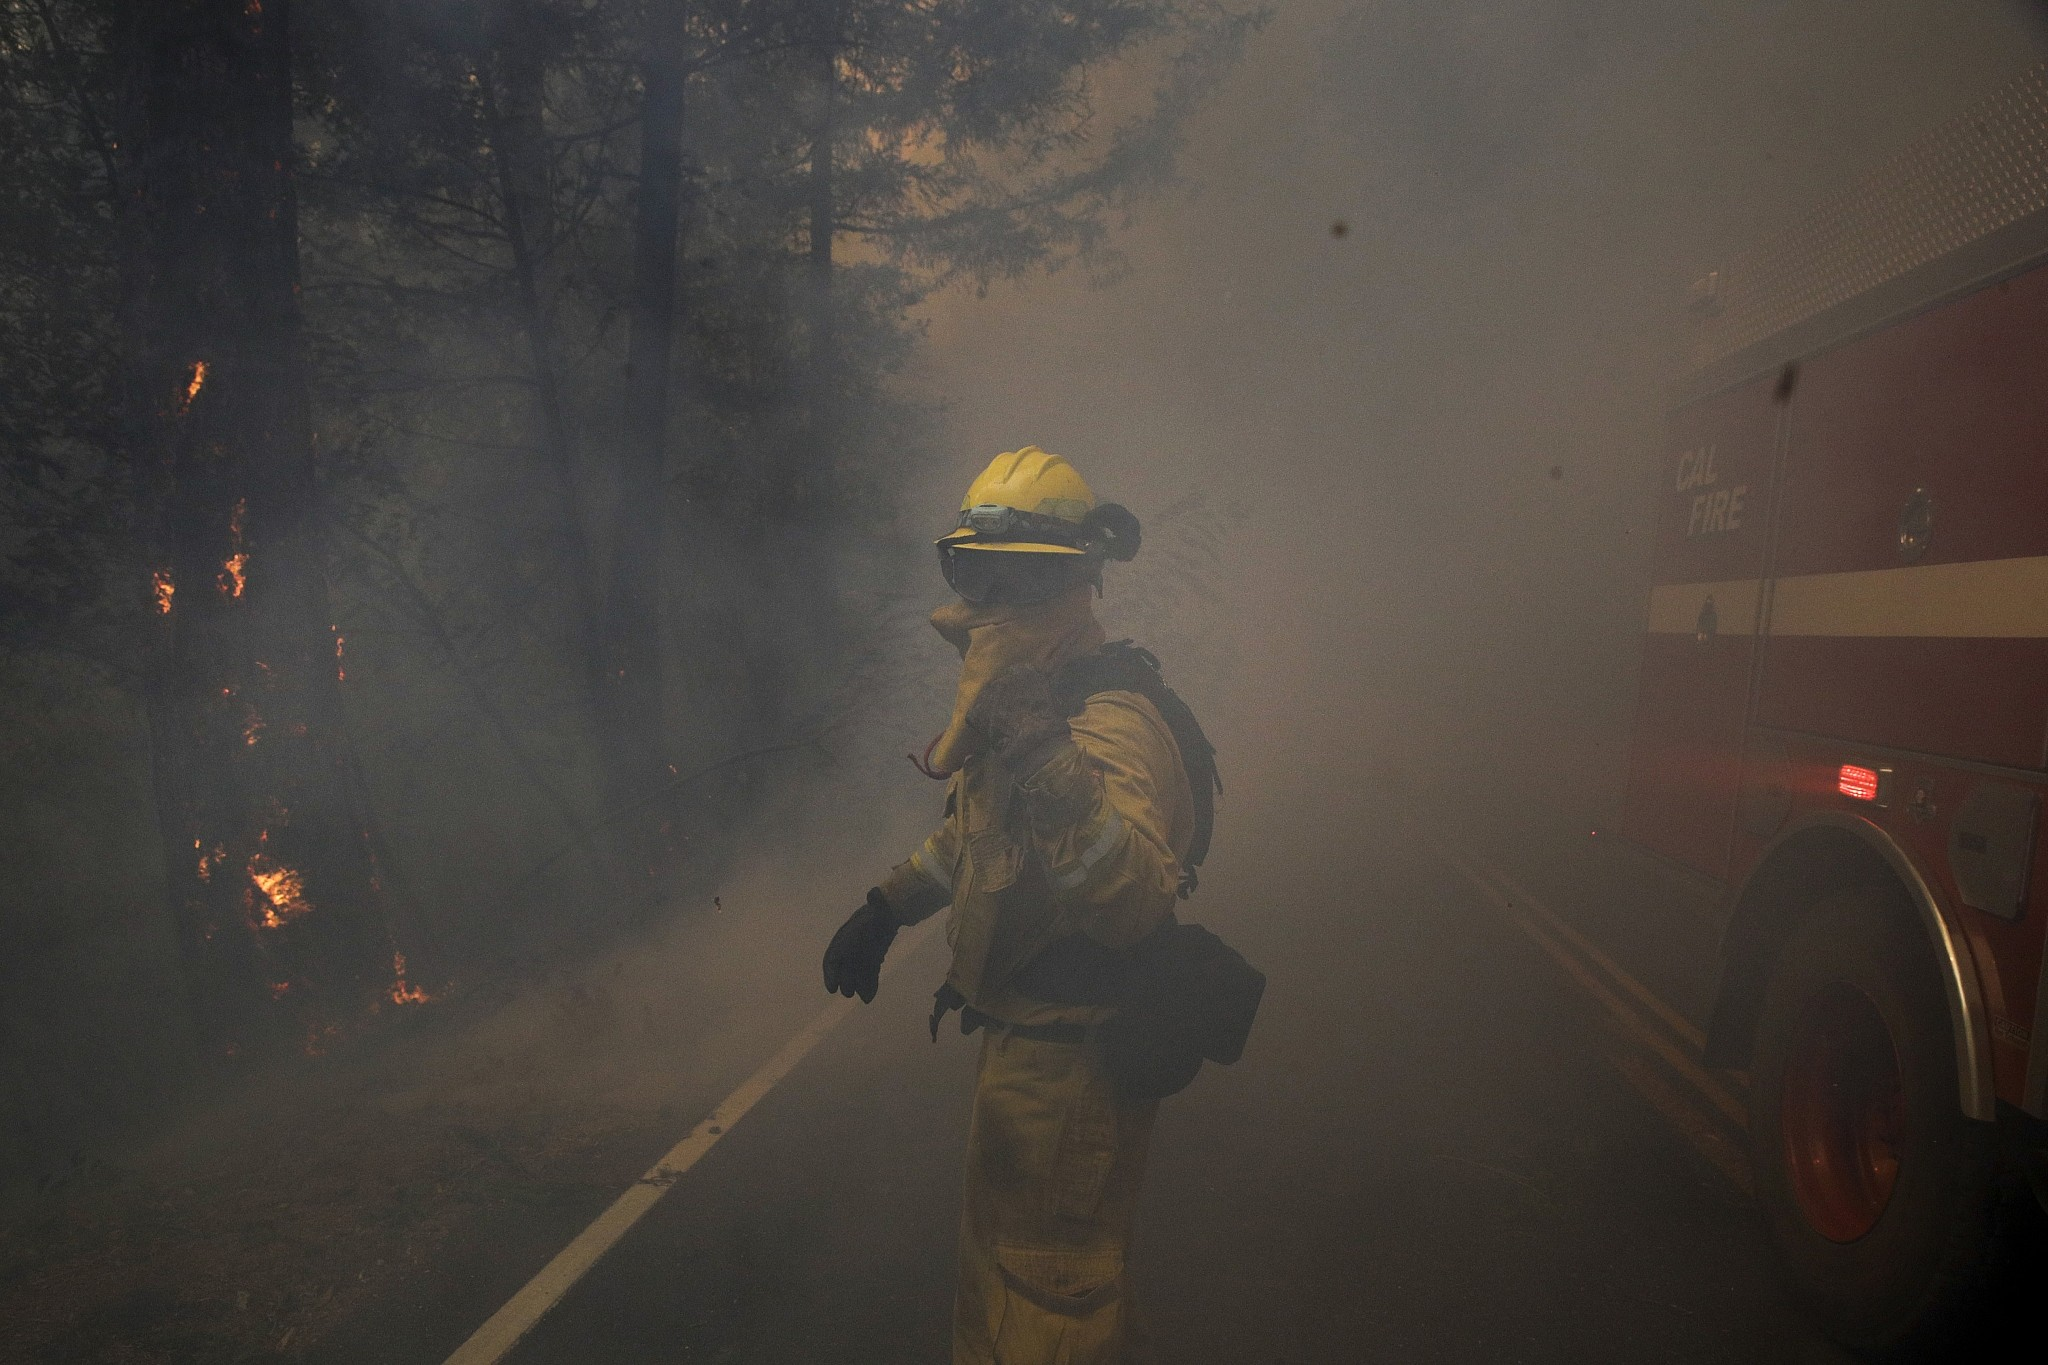 PG&E Makes Progress on Gas, Power Restores Despite Continuing Wildfires